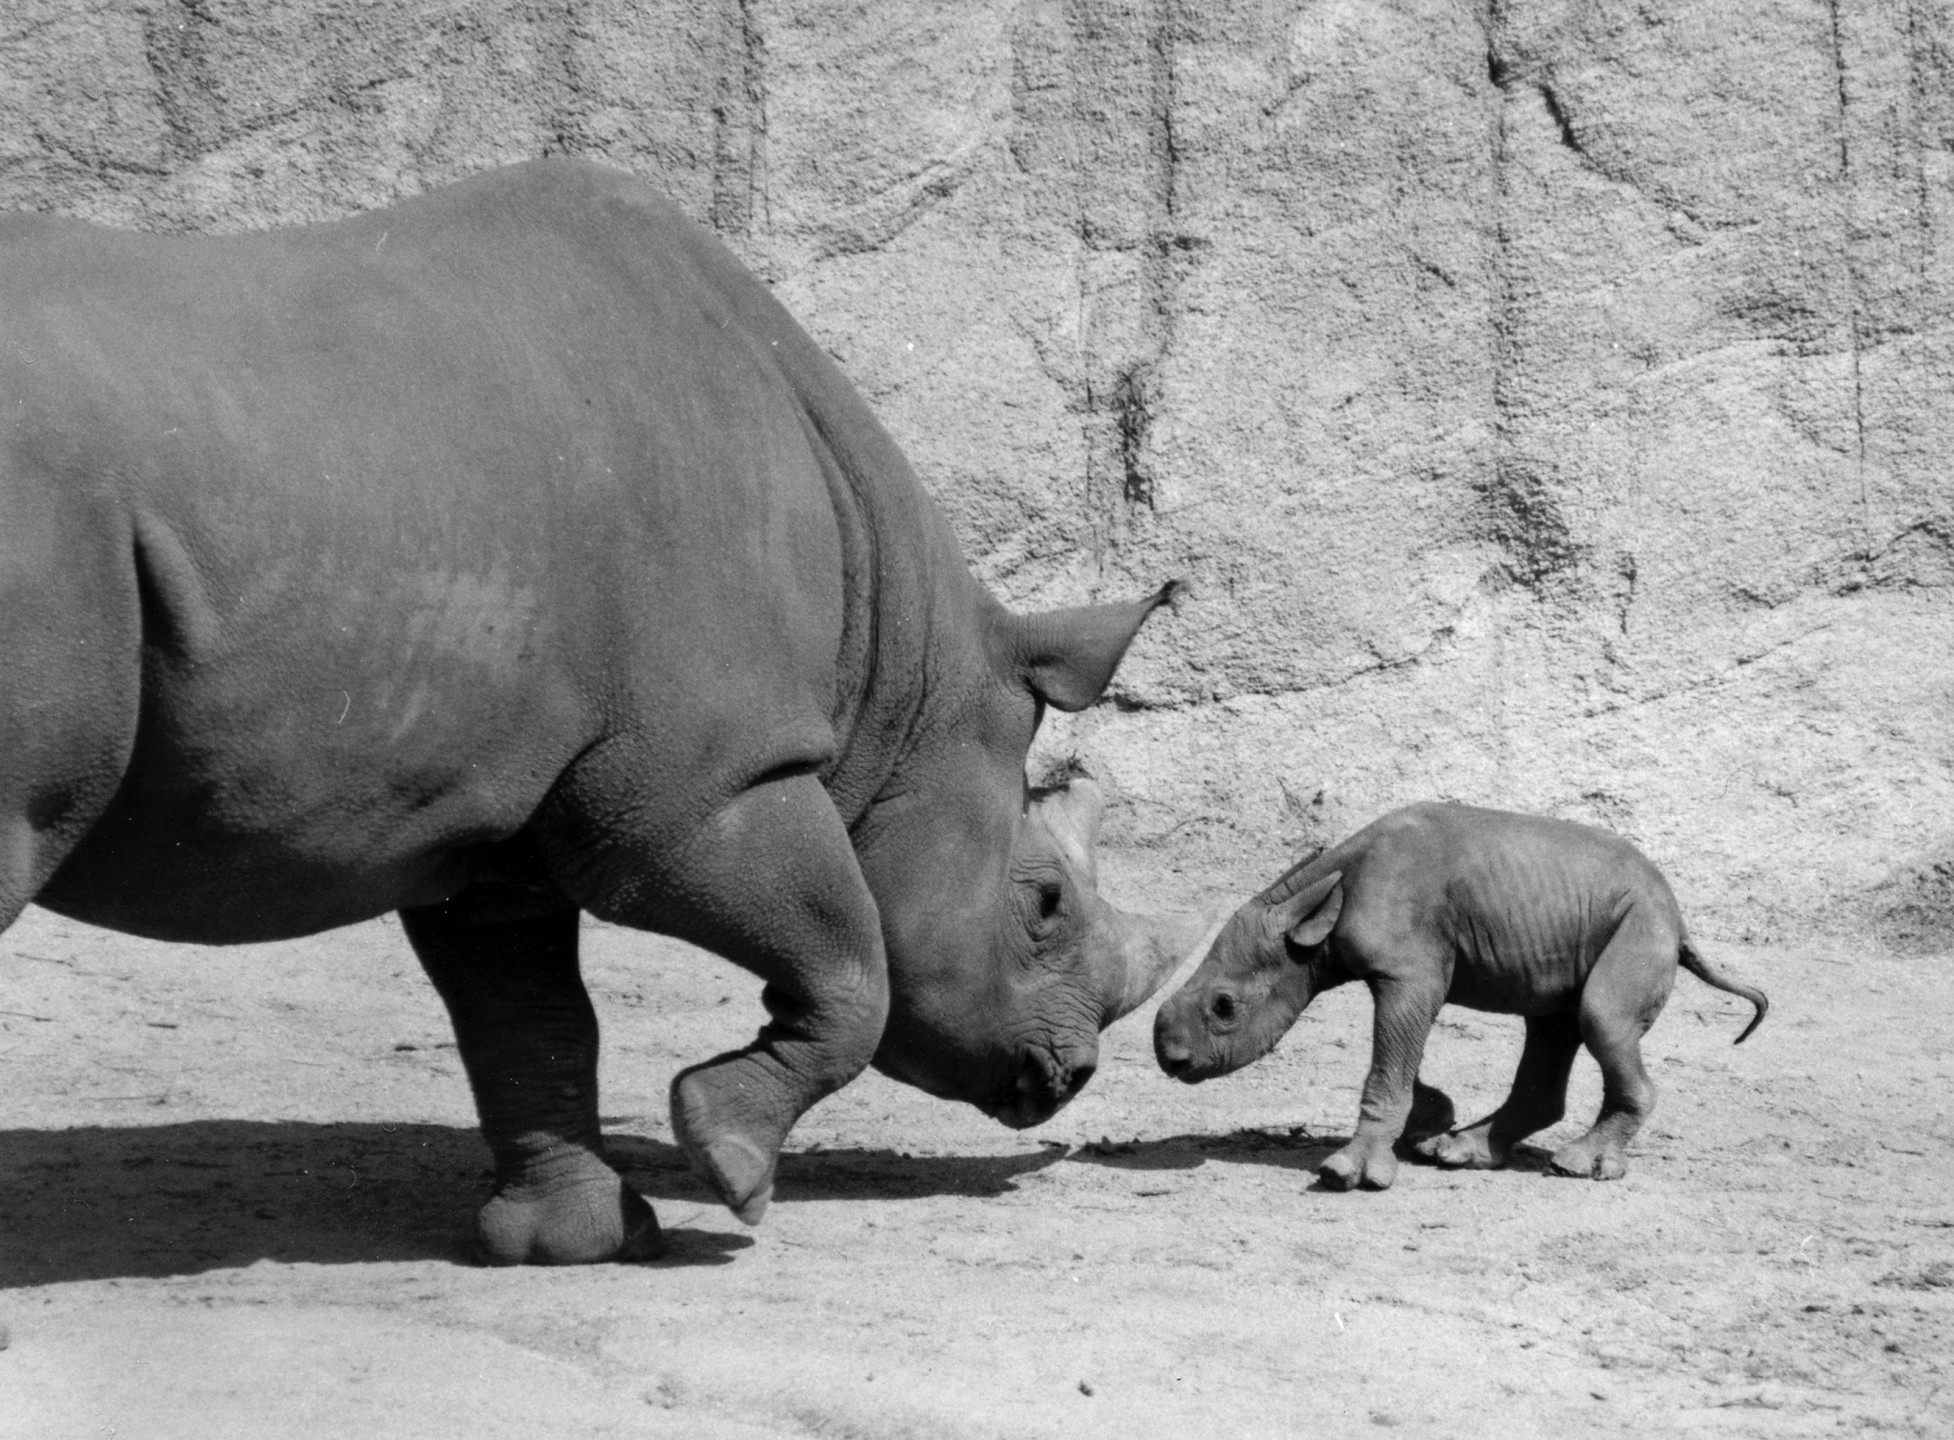 Nanyuki was named after a town in Kenya. Her parents were mother Mulenda (seen with her calf here) and father Dillon.